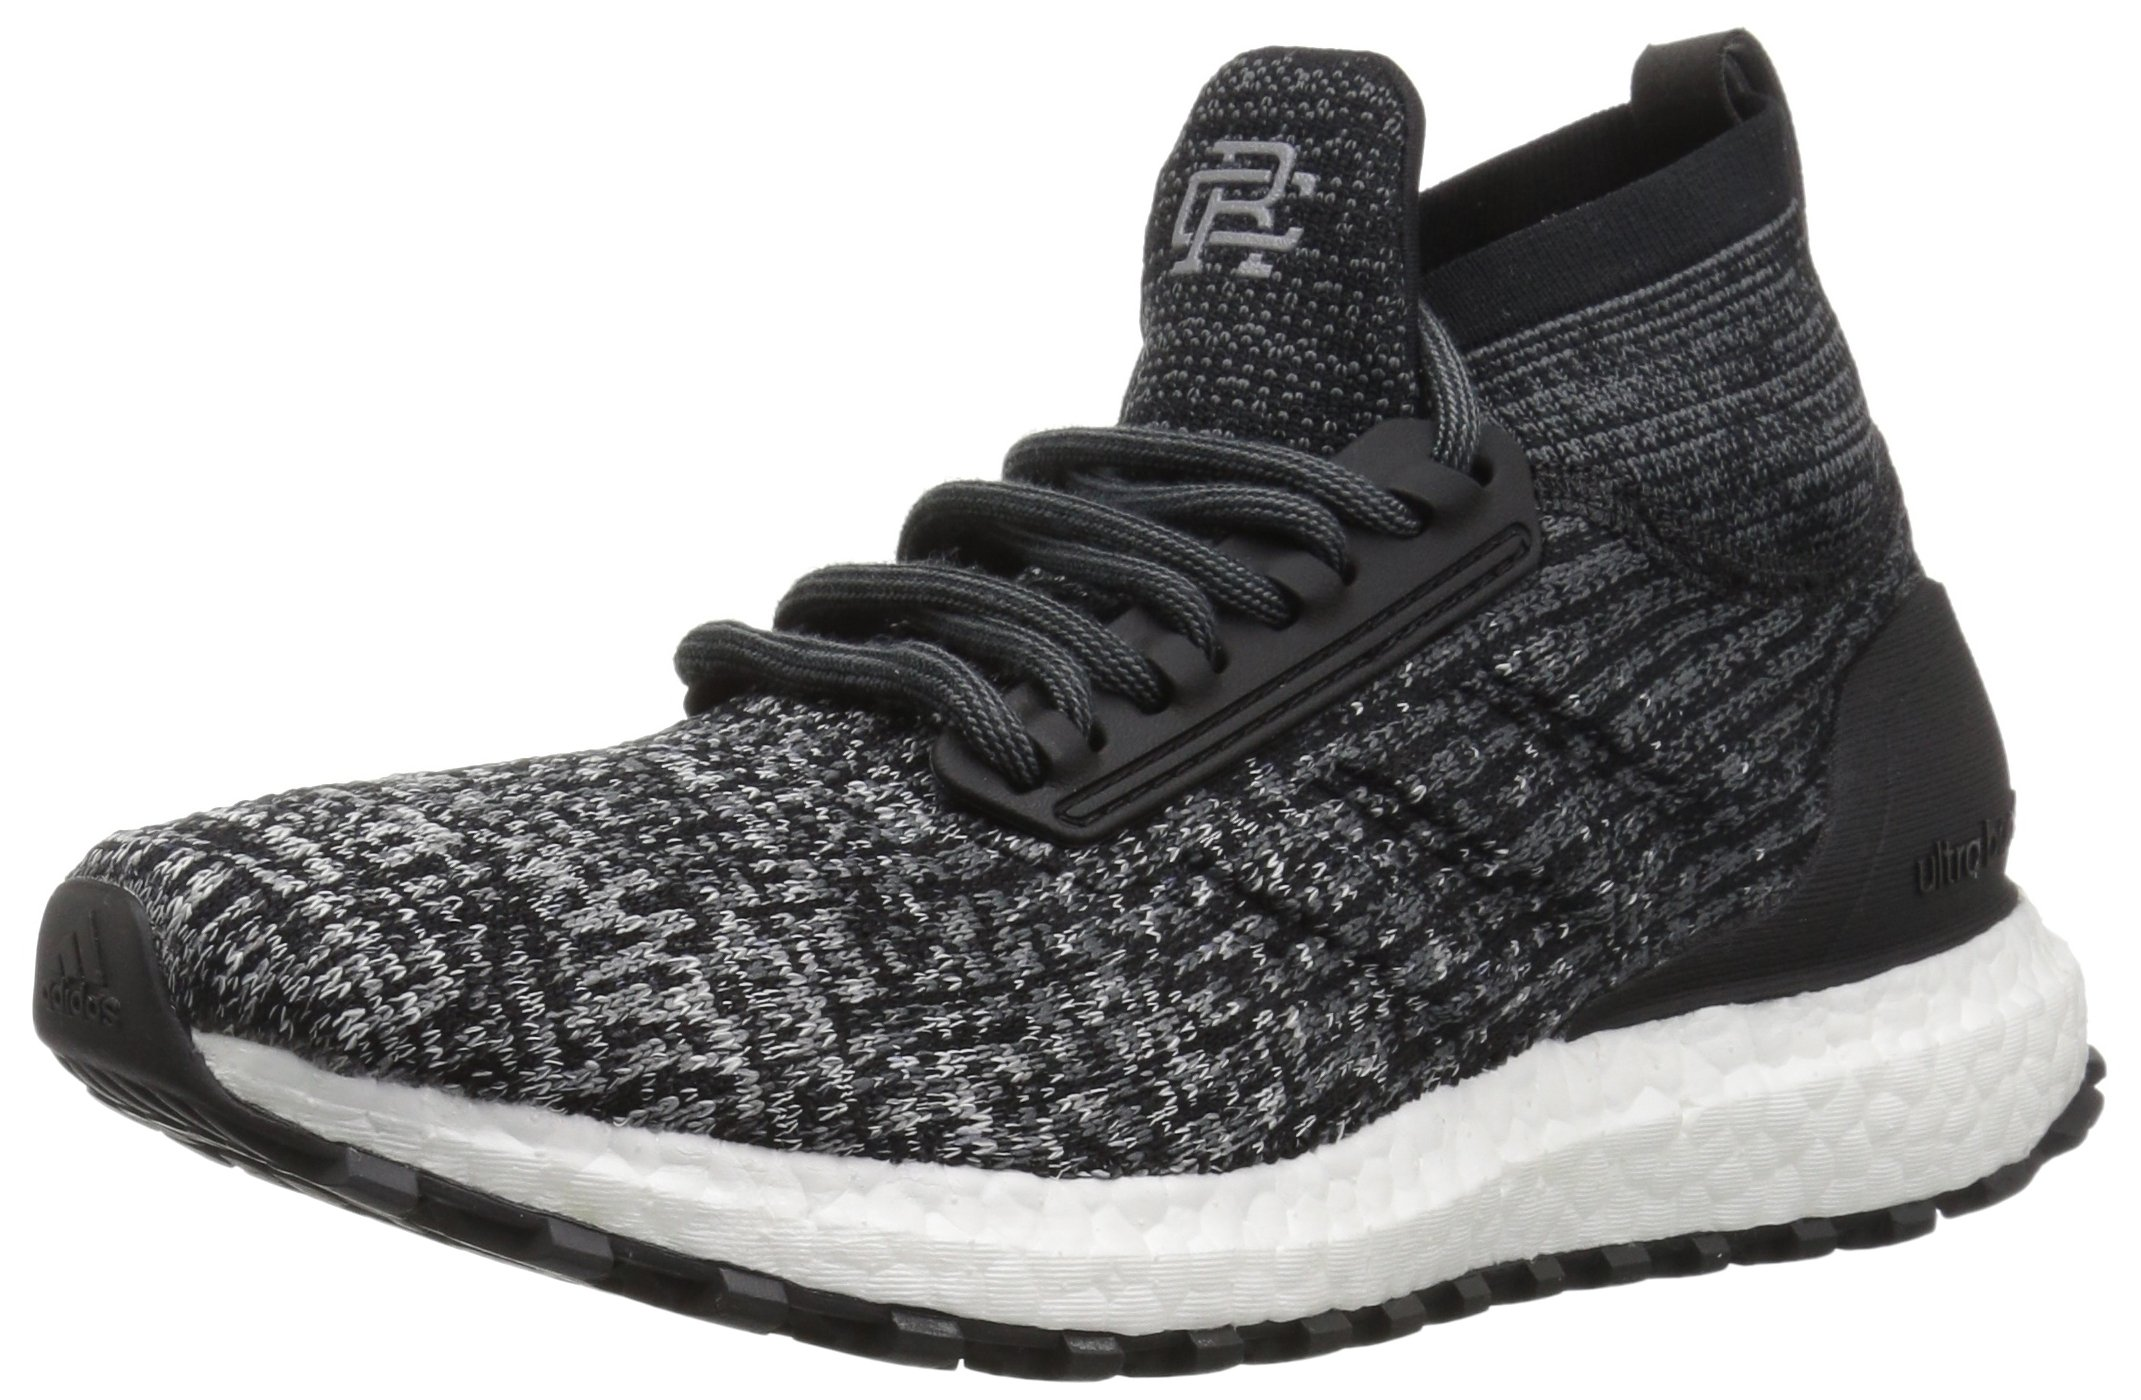 buy popular c45fb a375d adidas X Reigning Champ UltraBOOST All Terrain Shoe,black/black/white,9 M US